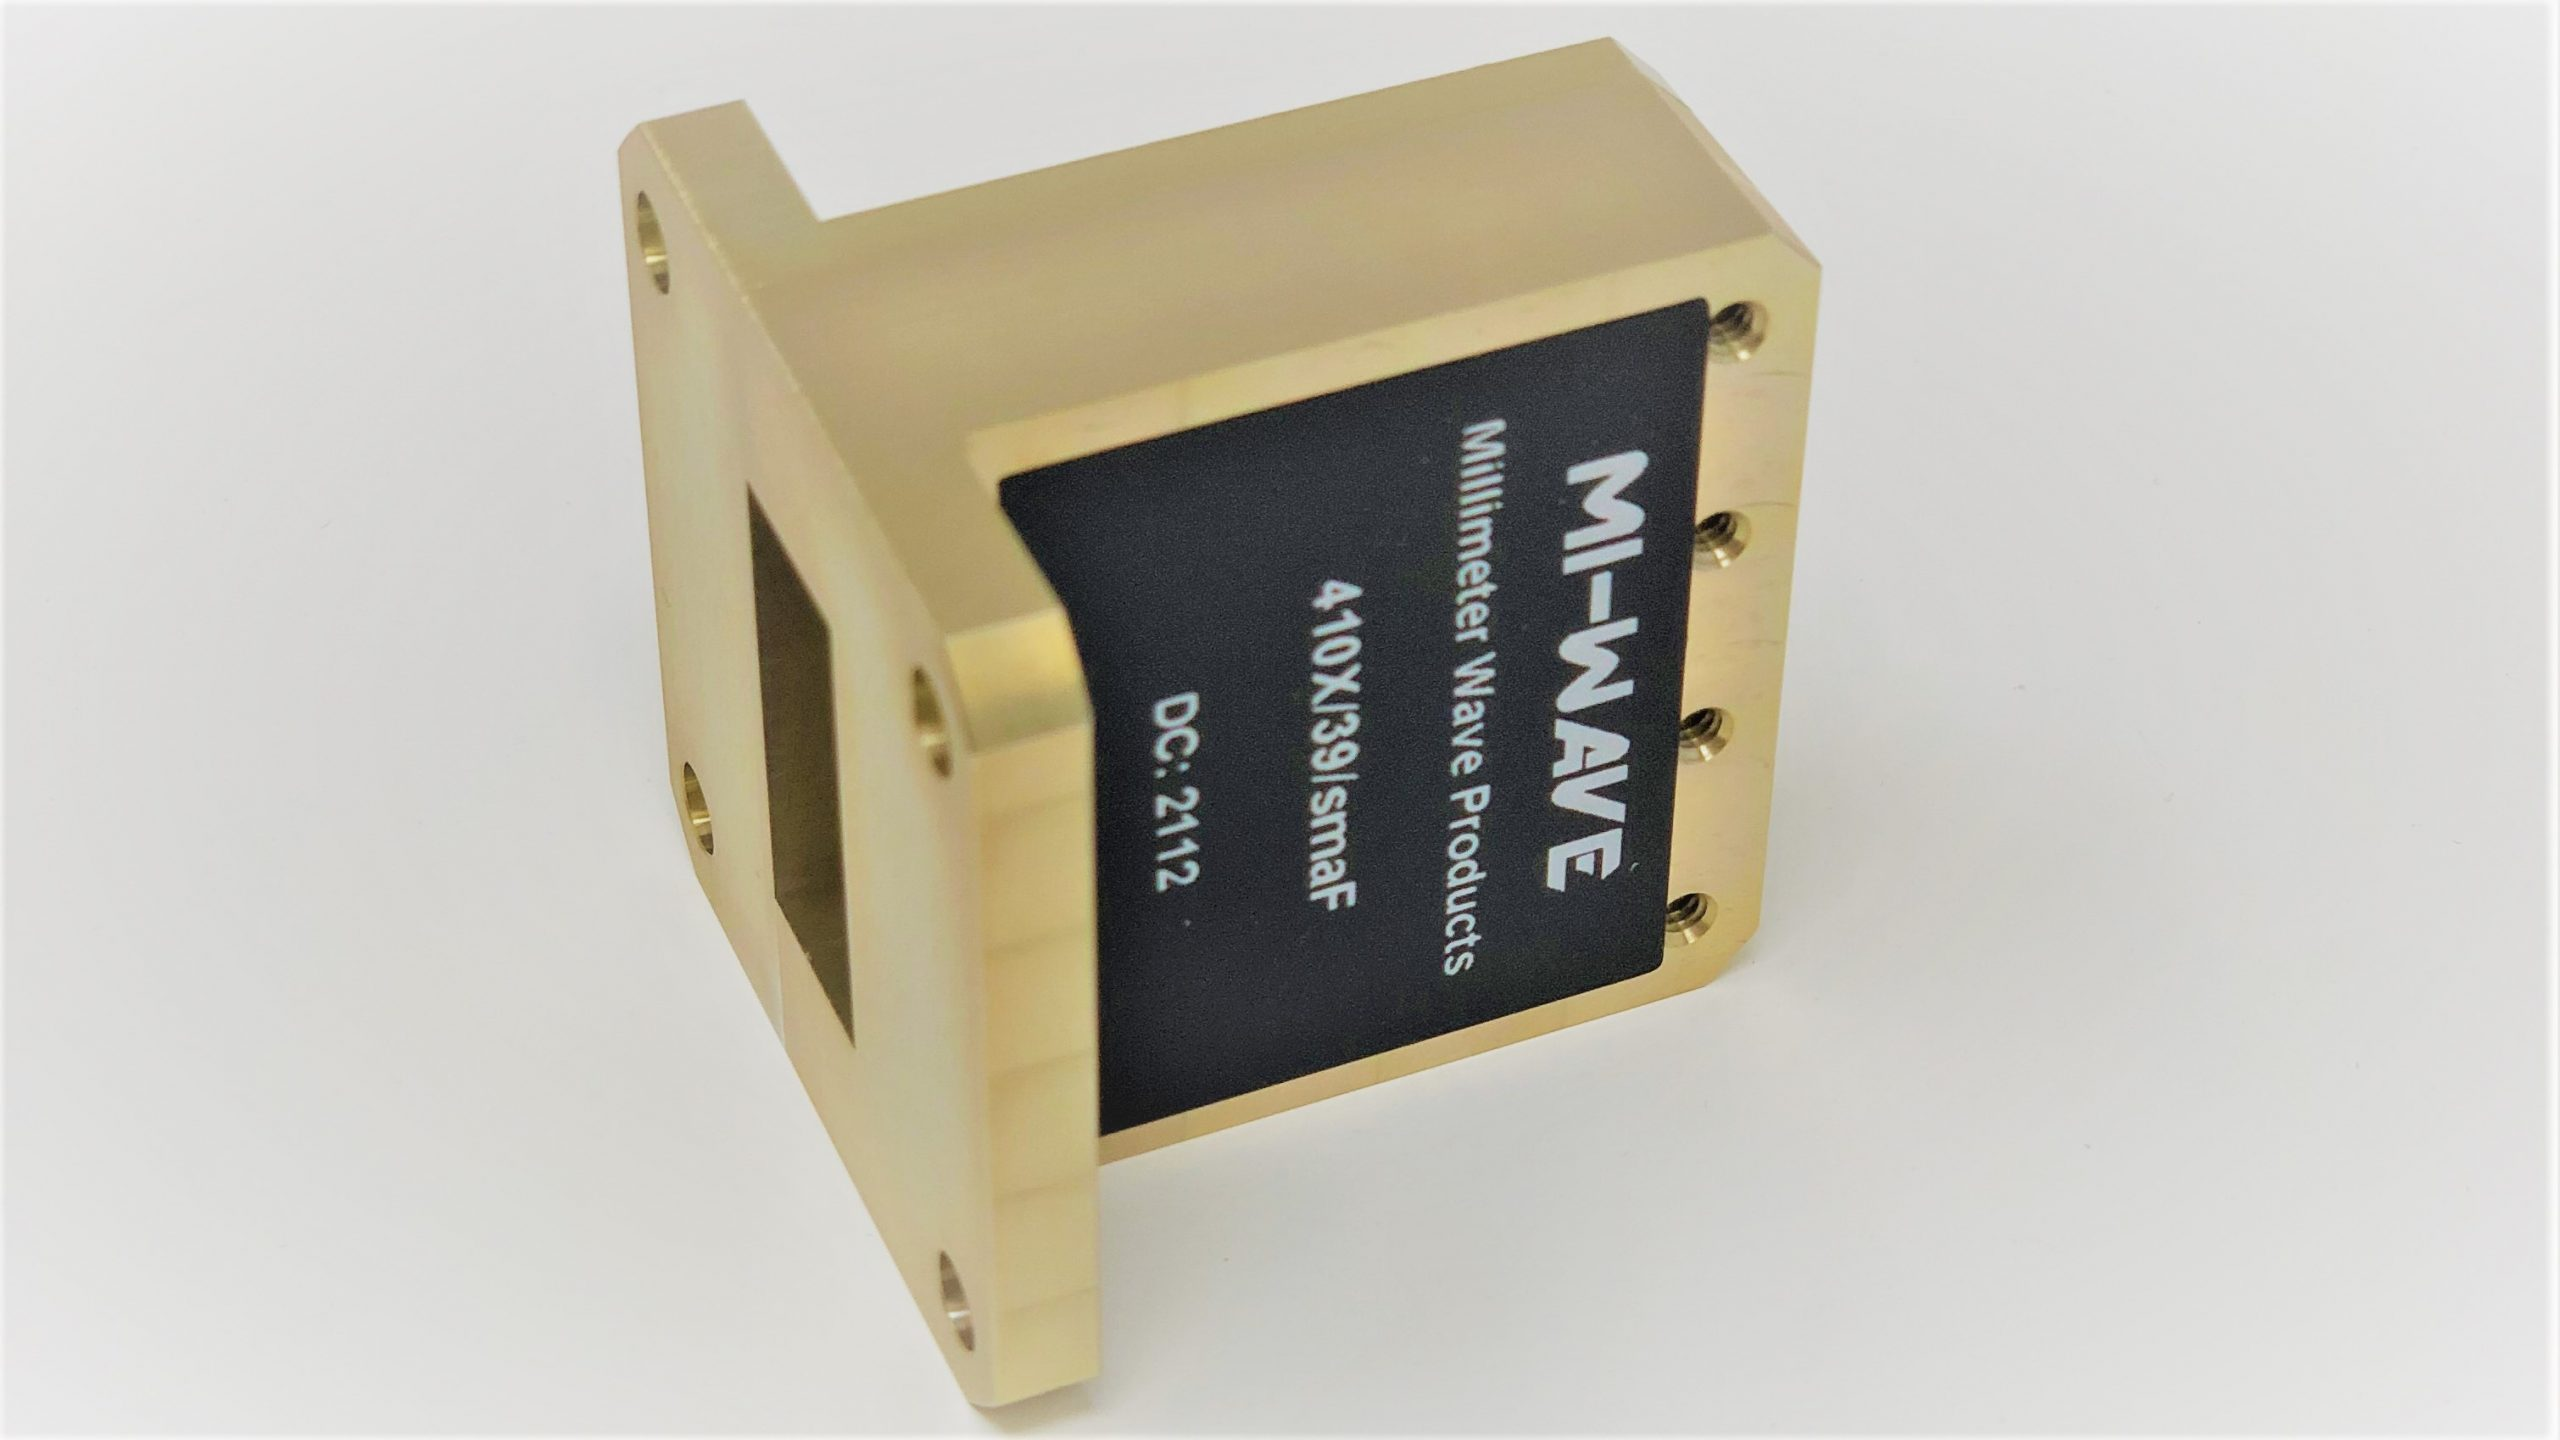 https://www.miwv.com/x-band-waveguide-to-coax-adapter-right-angle-adapter/